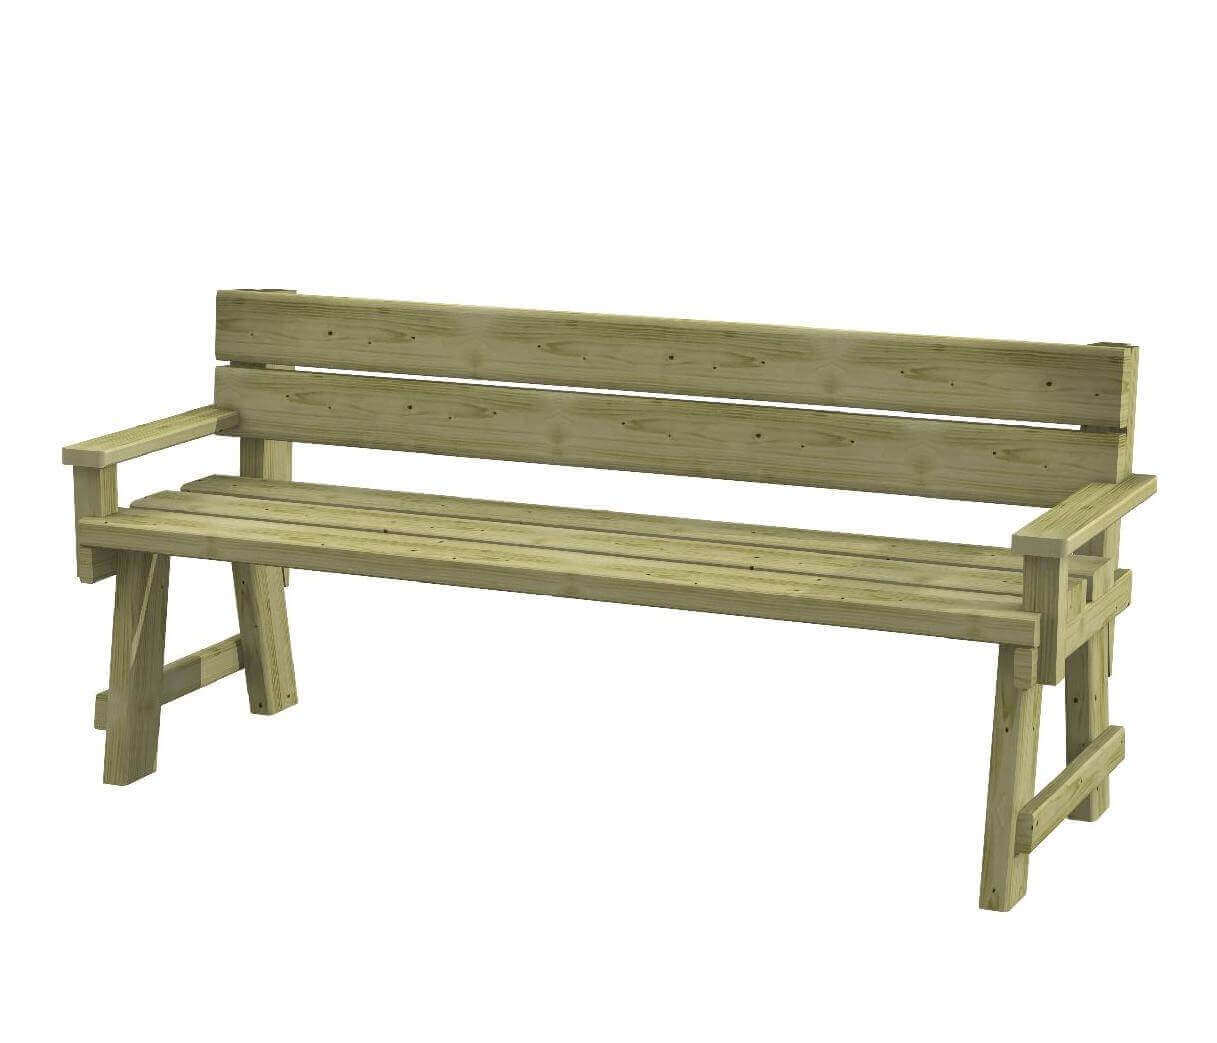 Panchina-per-parco-Lilly-legno-vendita-online-myrbricoshop_product_product_product